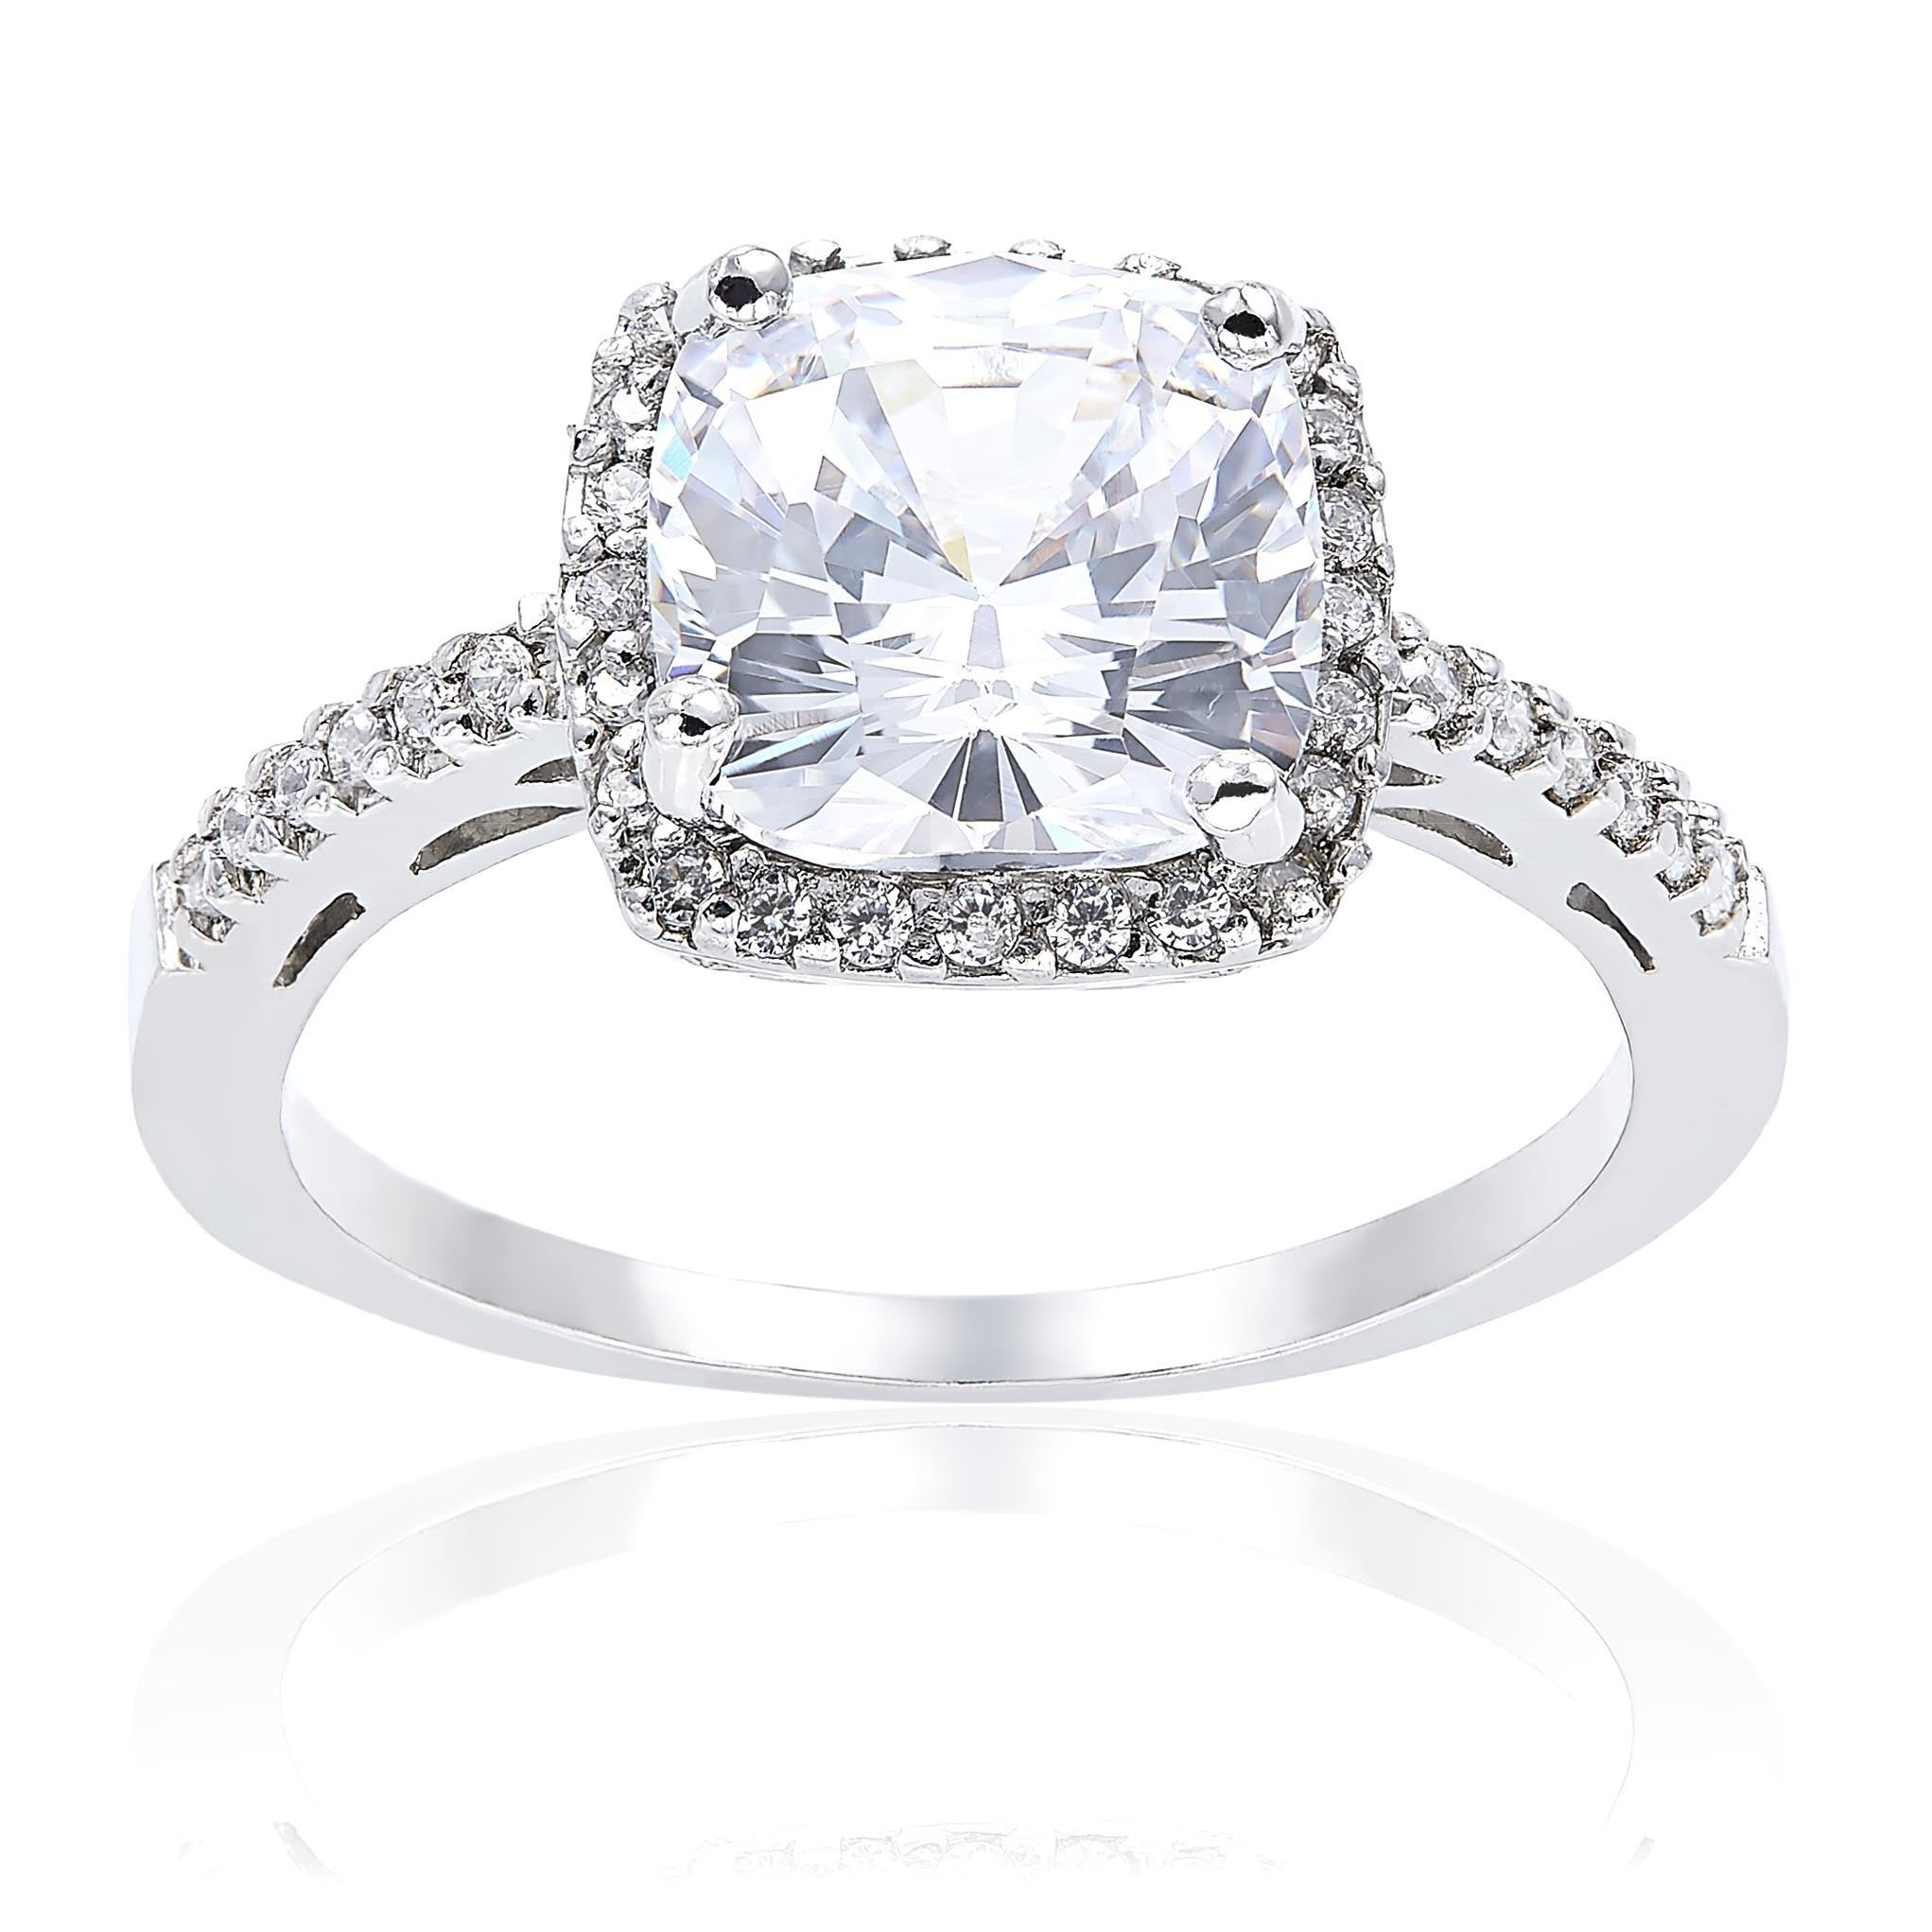 rings royal beautiful oval common most this engagement is because for timeless square coster diamond course round and cut diamonds fame sparkling the brilliant of banner